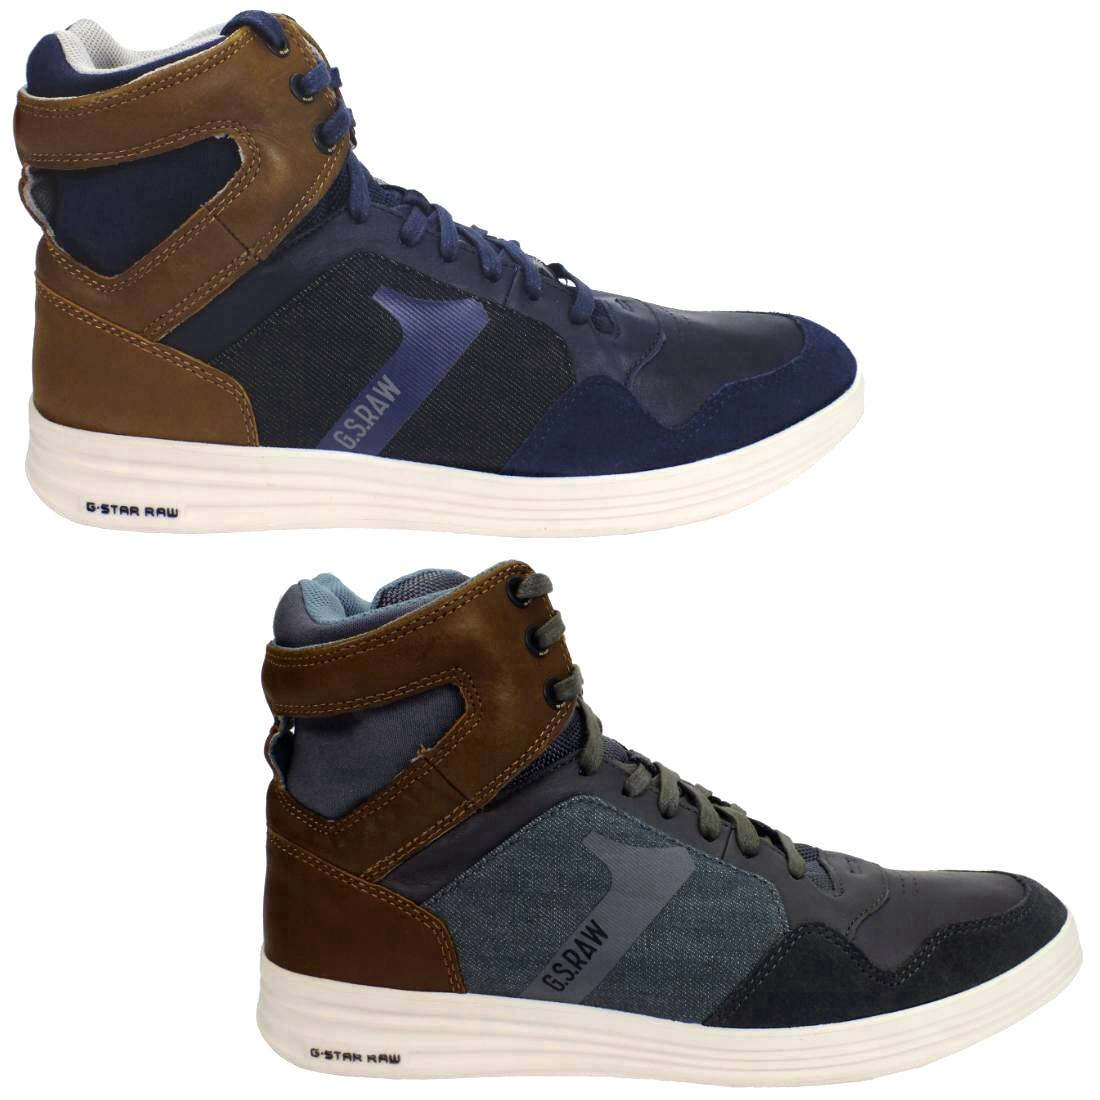 g star futura outland schuhe high top sneaker herren blau. Black Bedroom Furniture Sets. Home Design Ideas